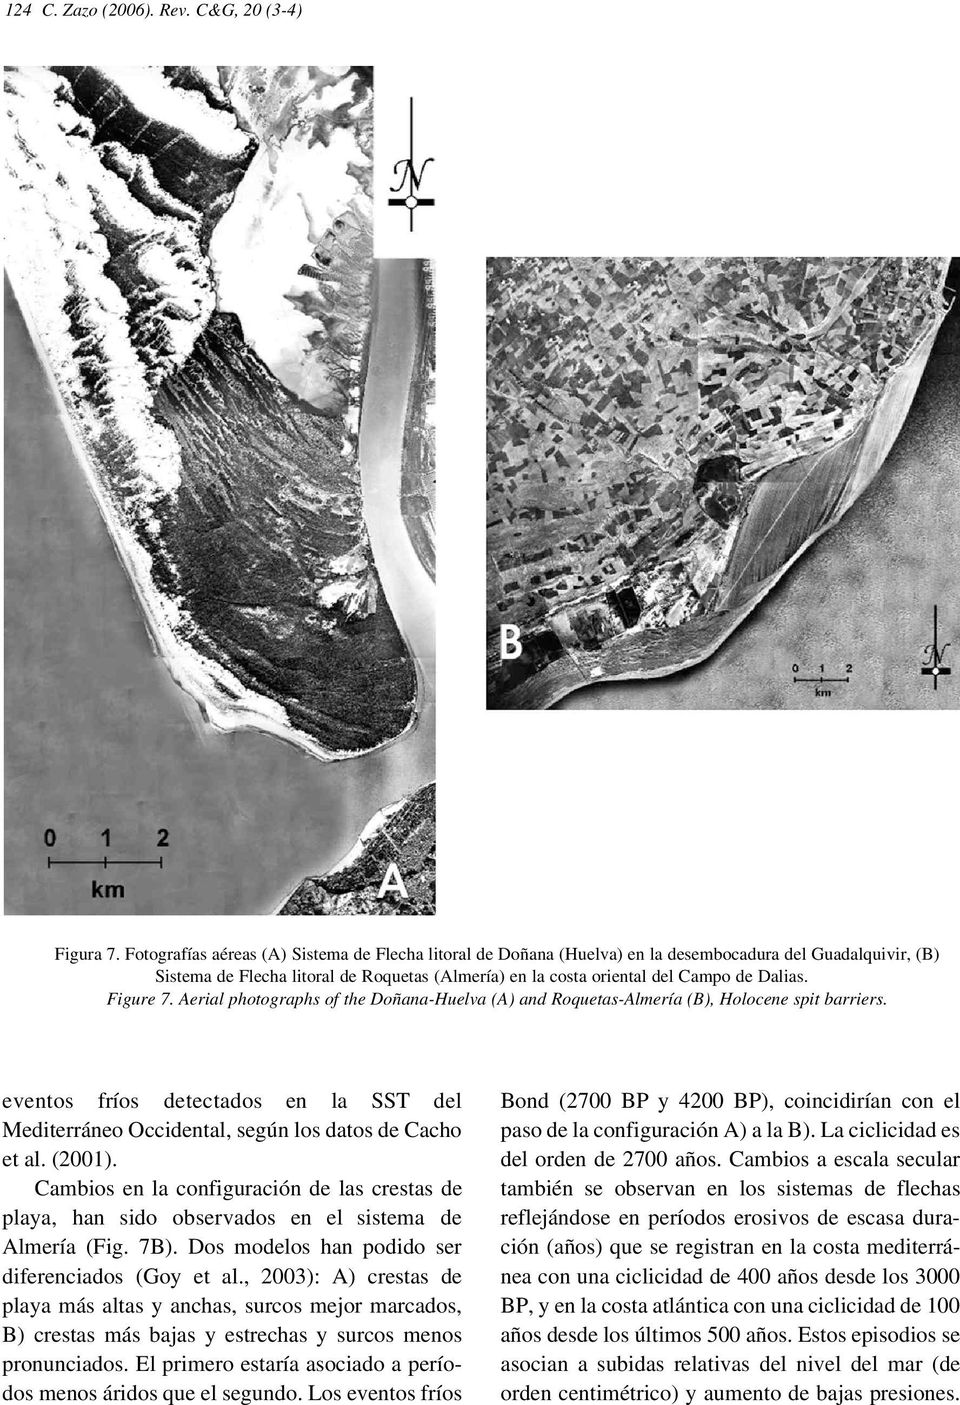 Figure 7. Aerial photographs of the Doñana-Huelva (A) and Roquetas-Almería (B), Holocene spit barriers.